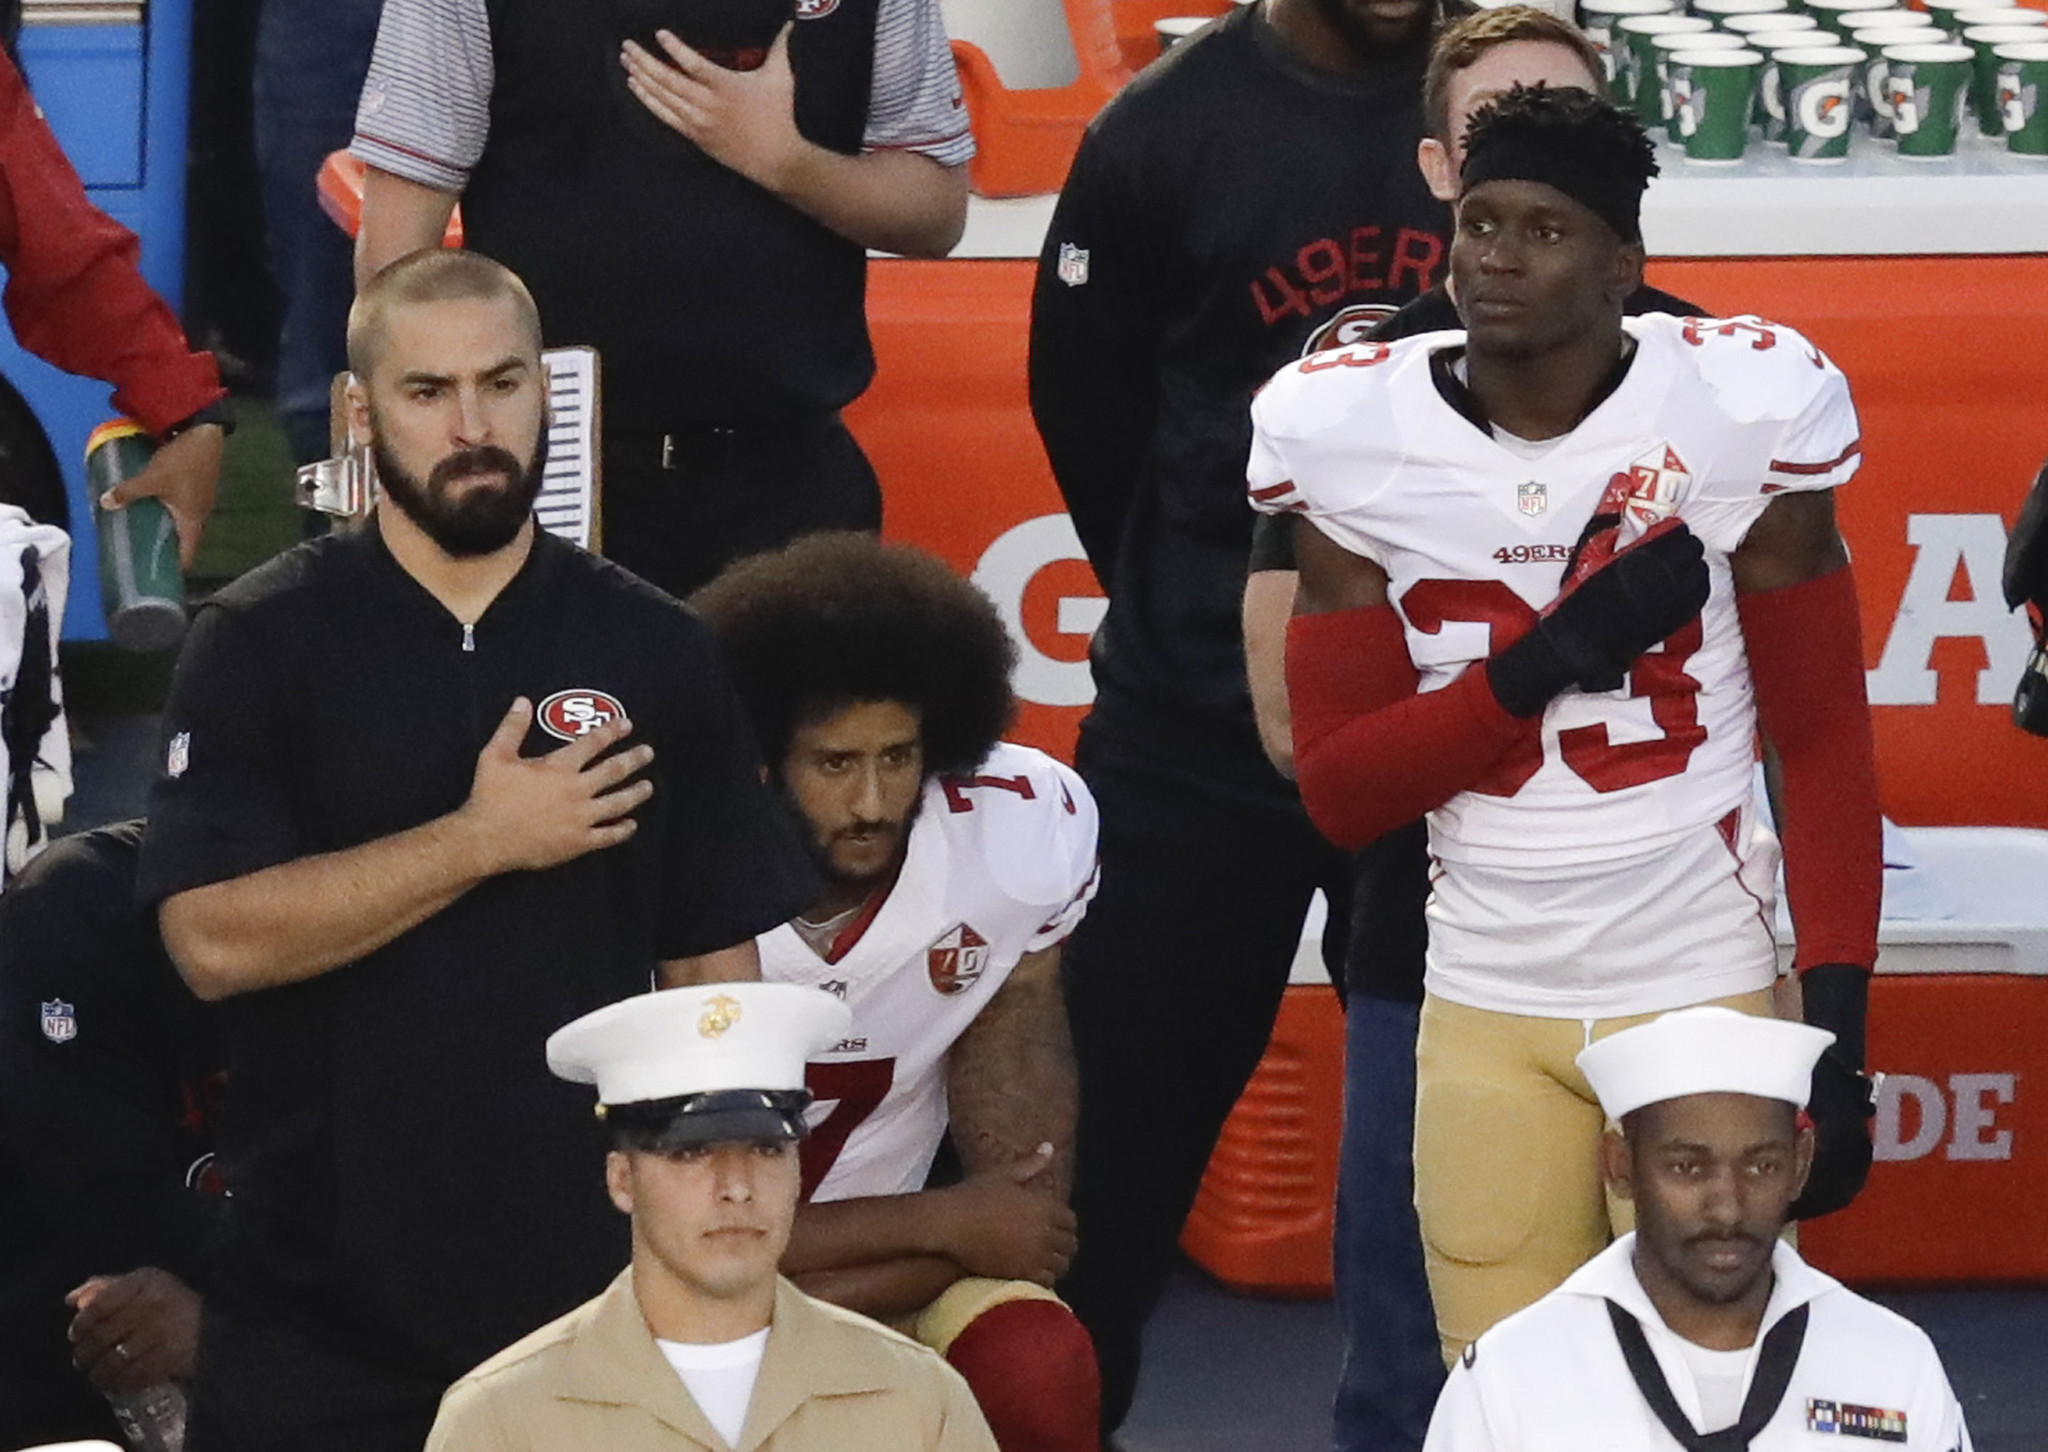 Colin kaepernick takes a knee during national anthem in san diego and is booed la times